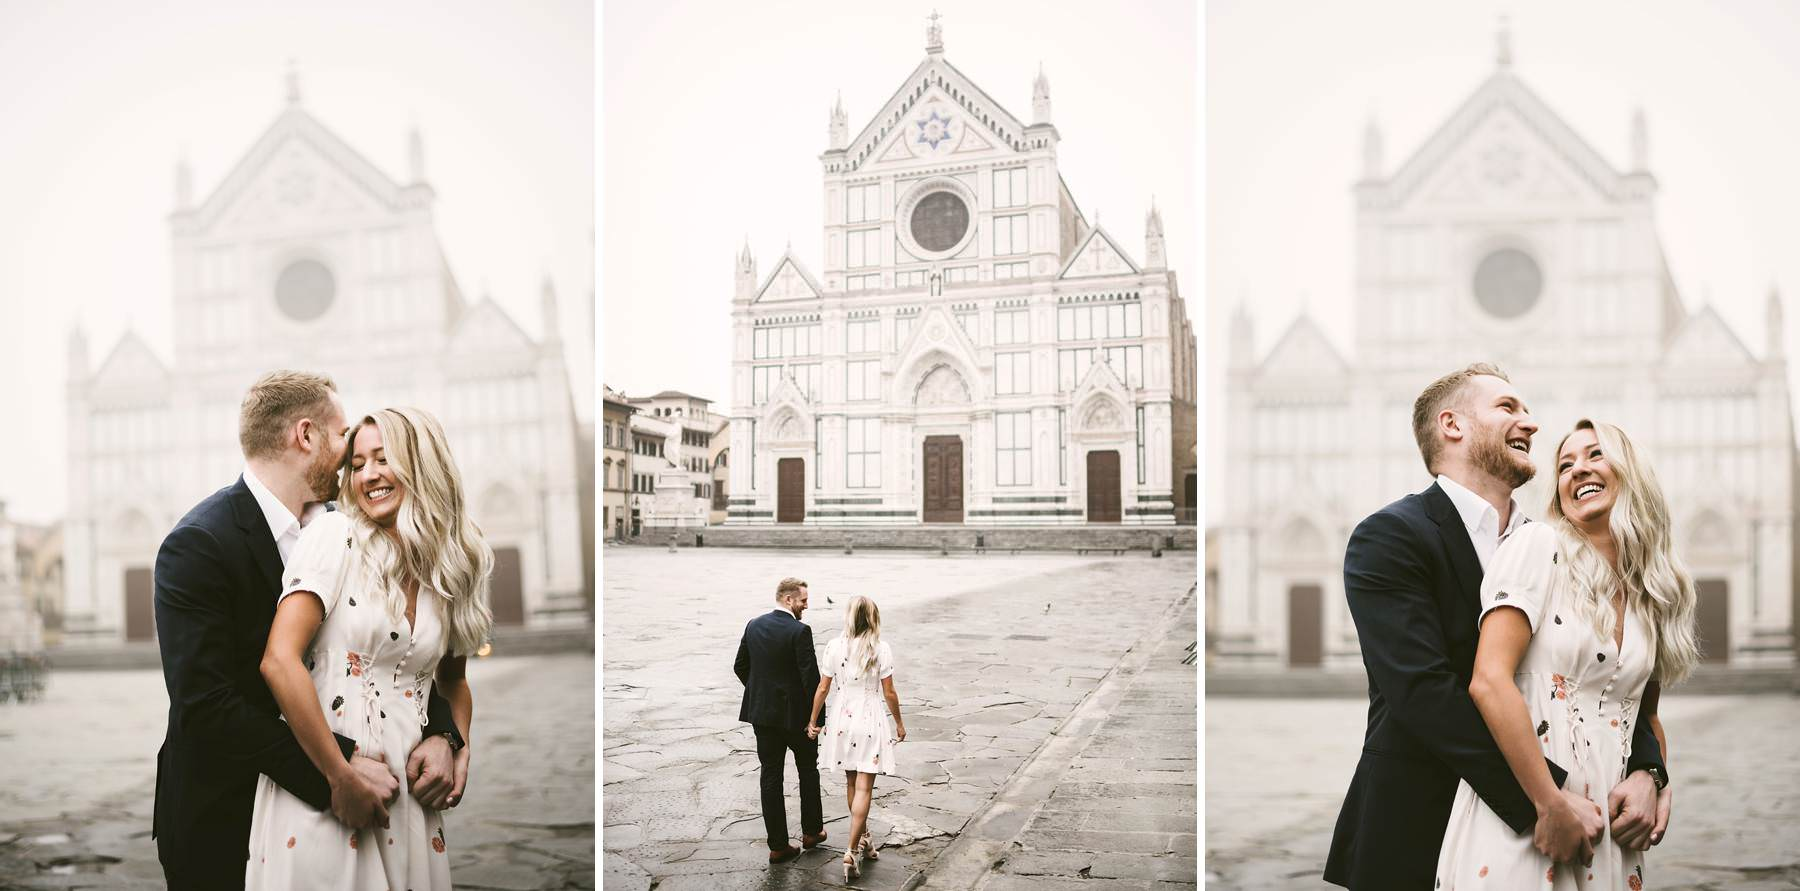 Have Florence at your feet with sunrise engagement photos